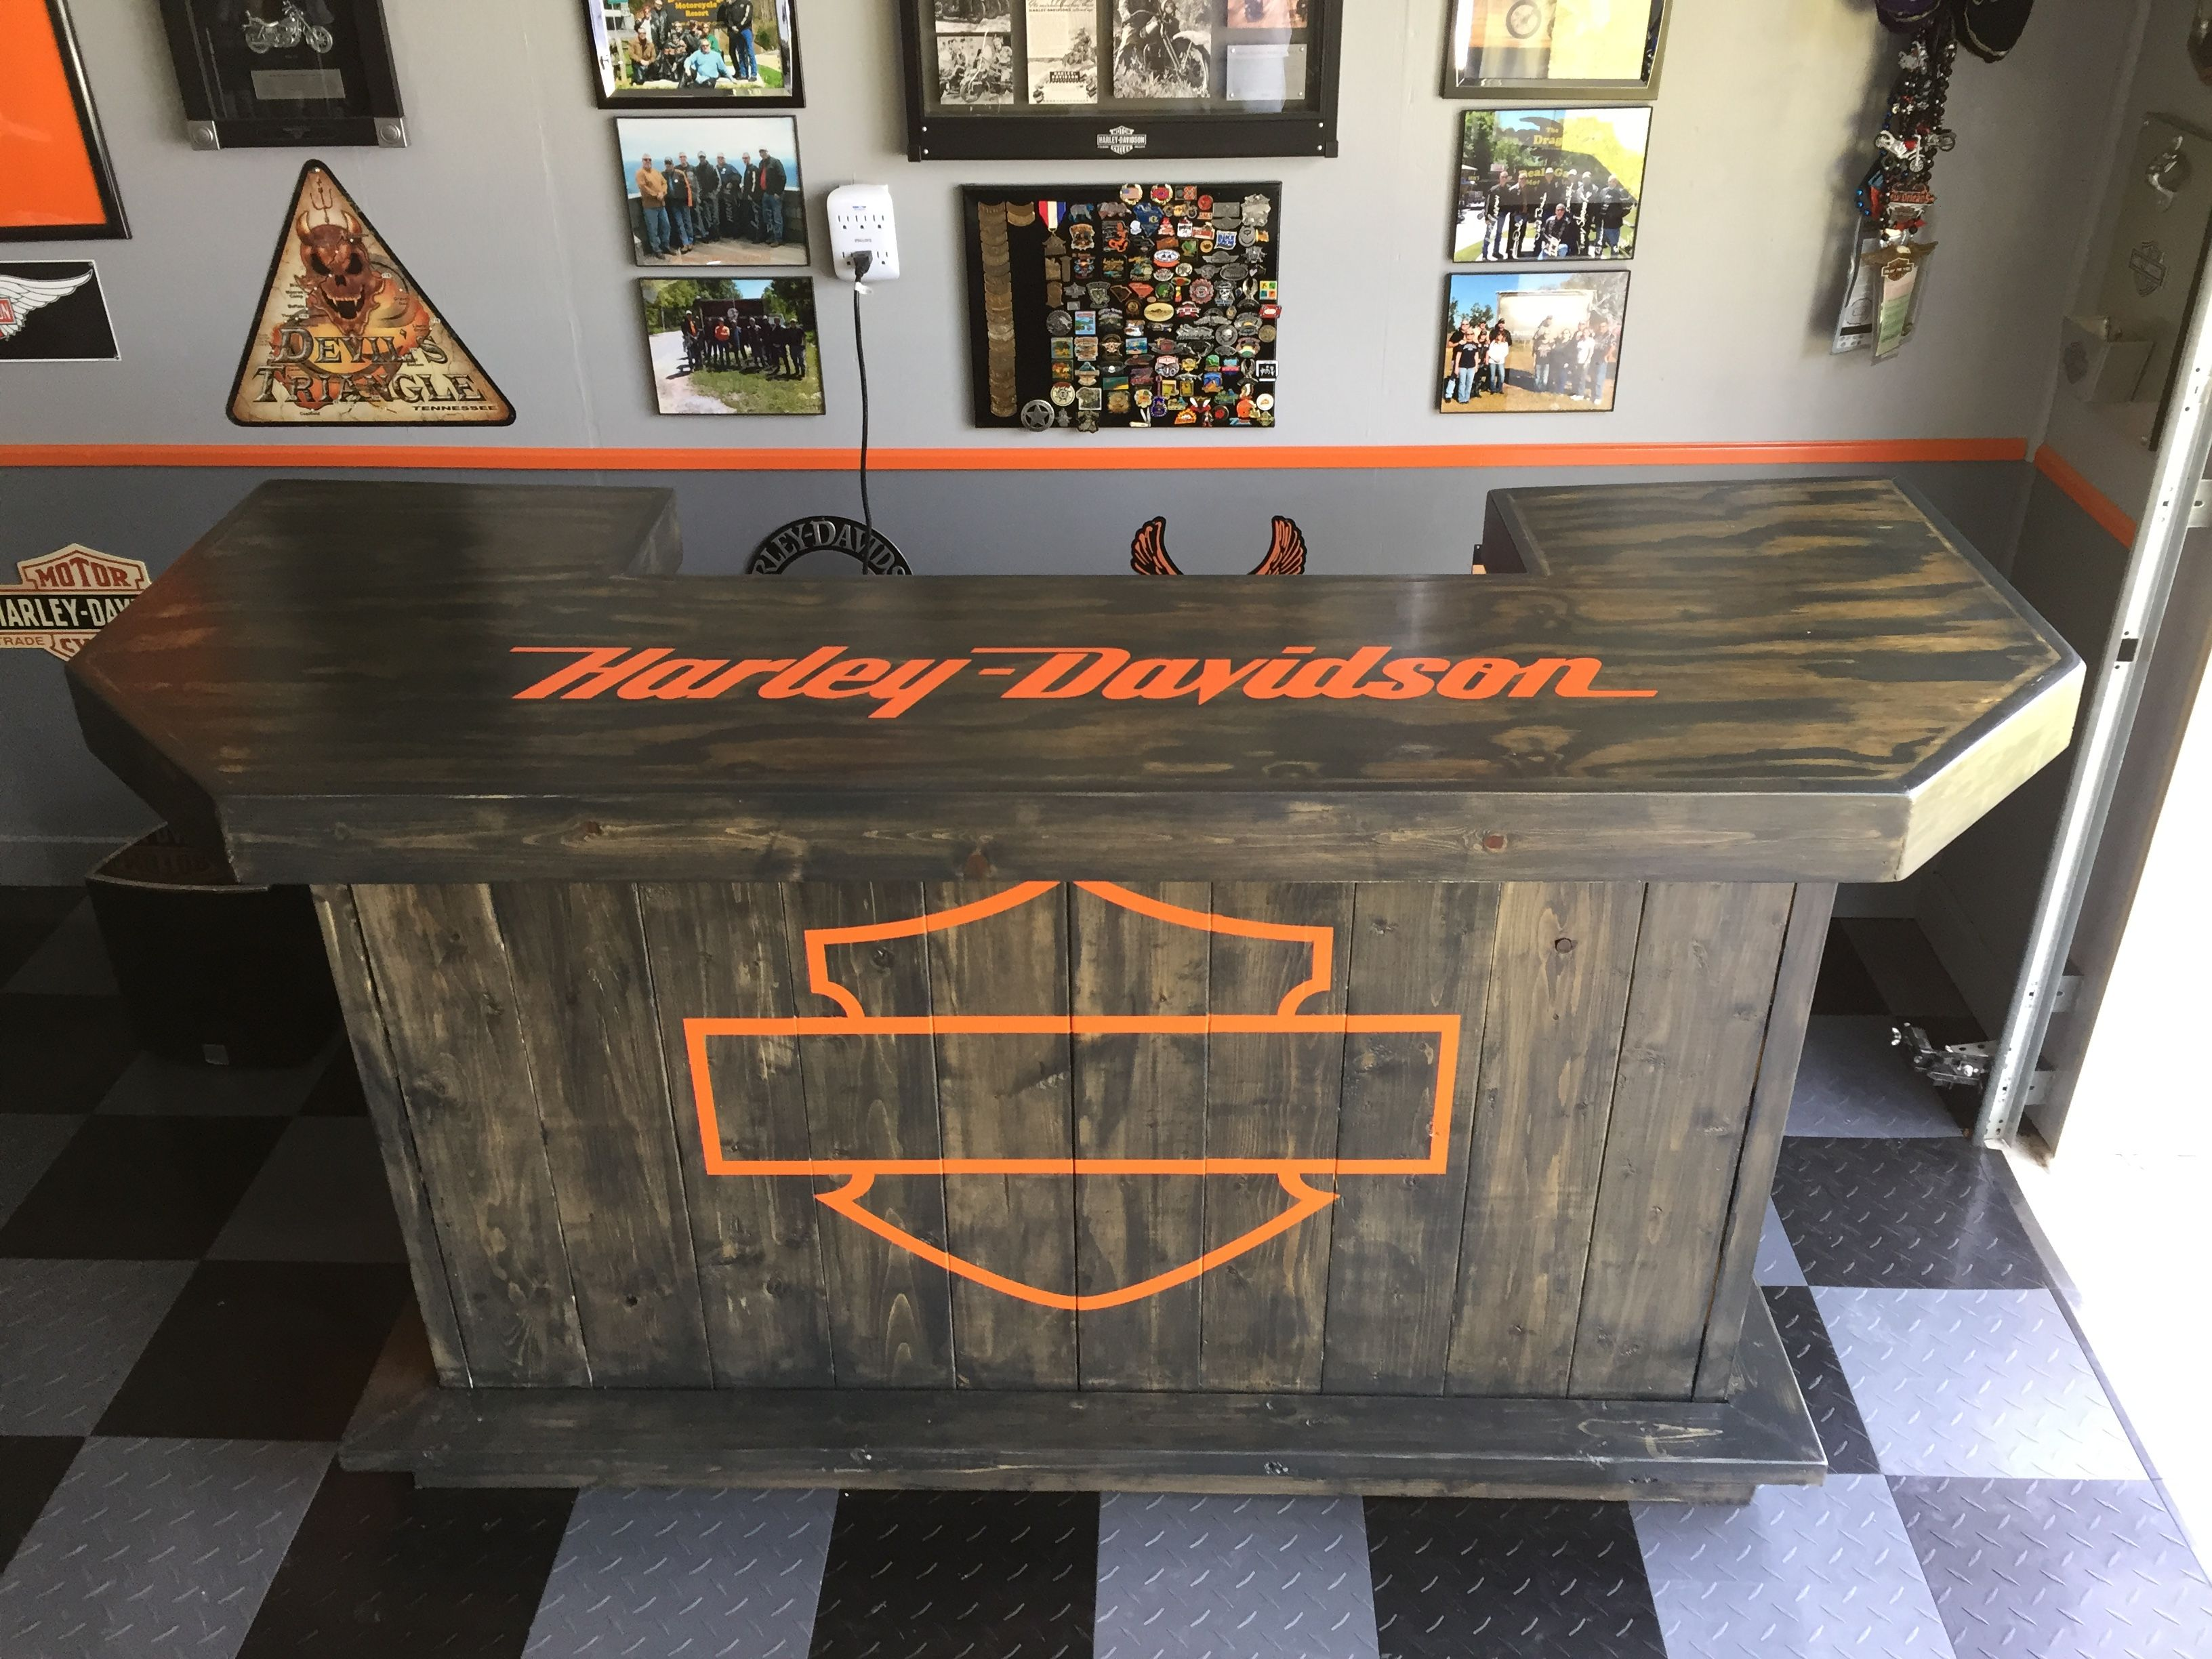 Harley Davidson Bar Harley Davidson Decor Man Cave Home Bar Bar Furniture